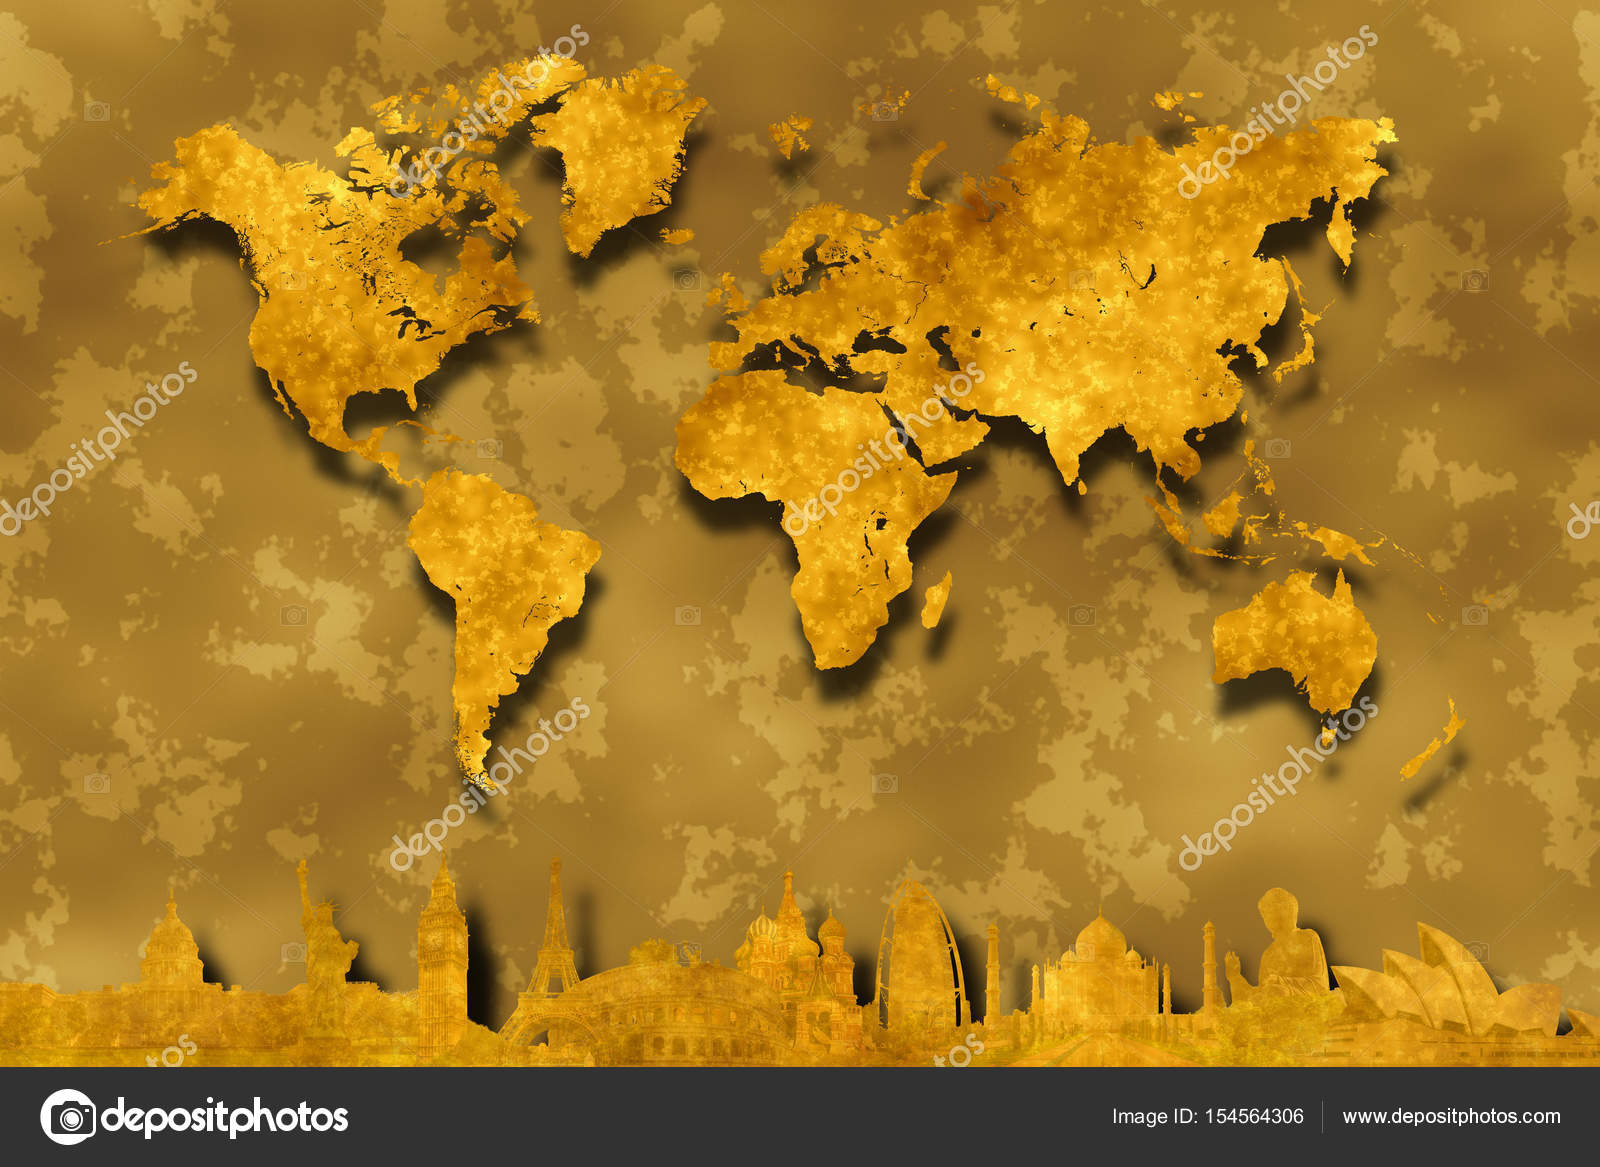 Gold world map on abstract golden background with golden silhouettes gold world map on abstract golden background with golden silhouettes of famous world landmarks from washington new york london paris rome moscow gumiabroncs Choice Image